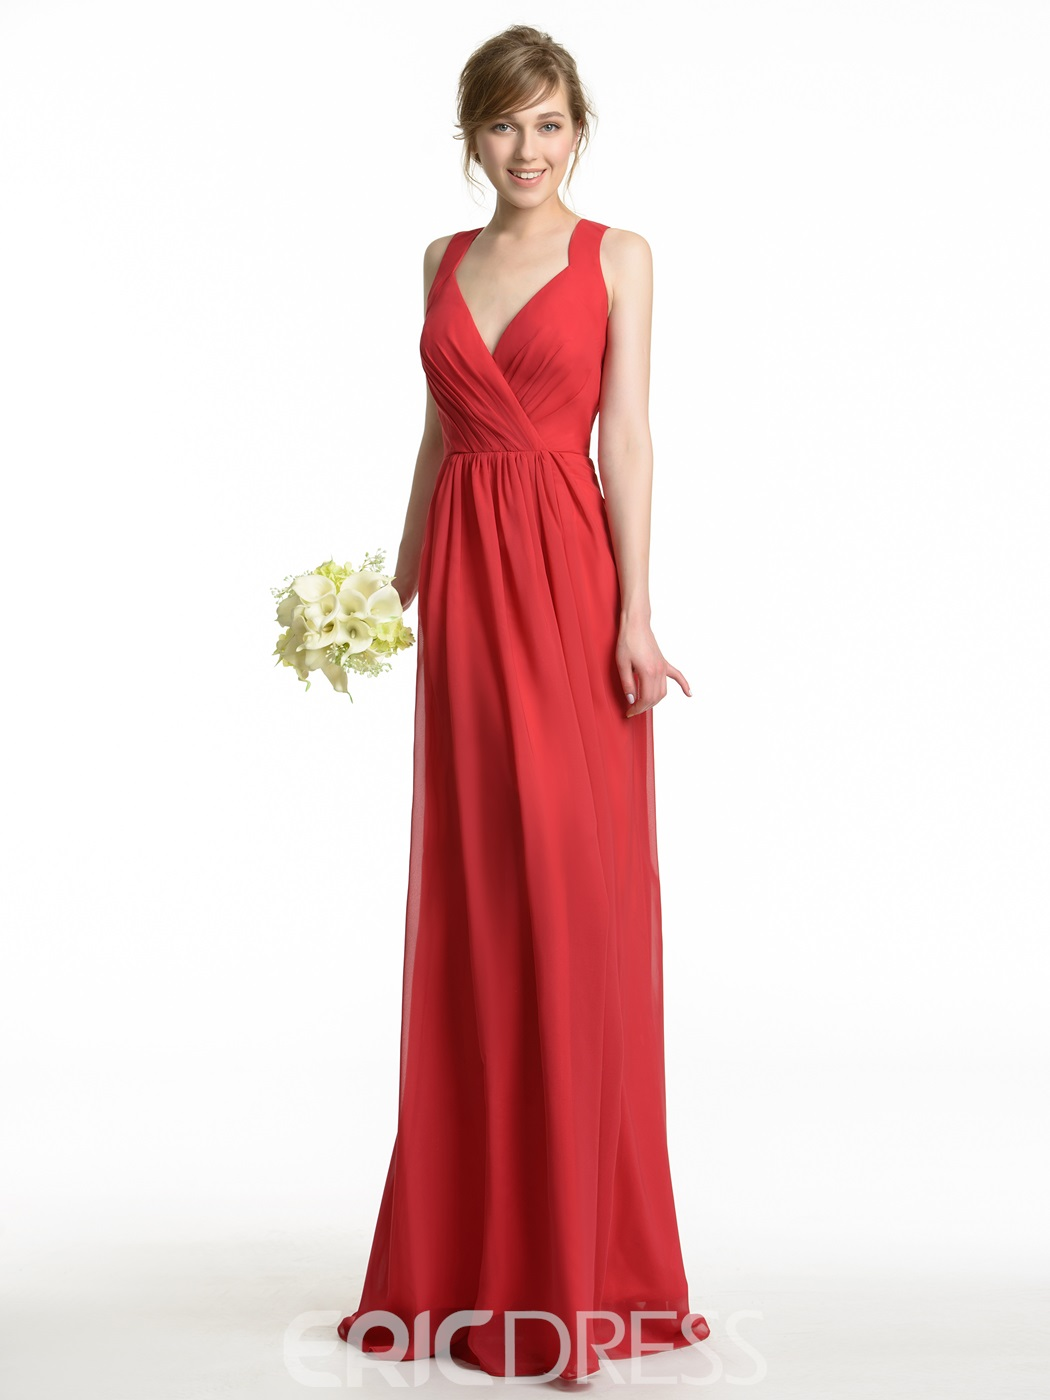 Ericdress High Quality Straps Long Bridesmaid Dress